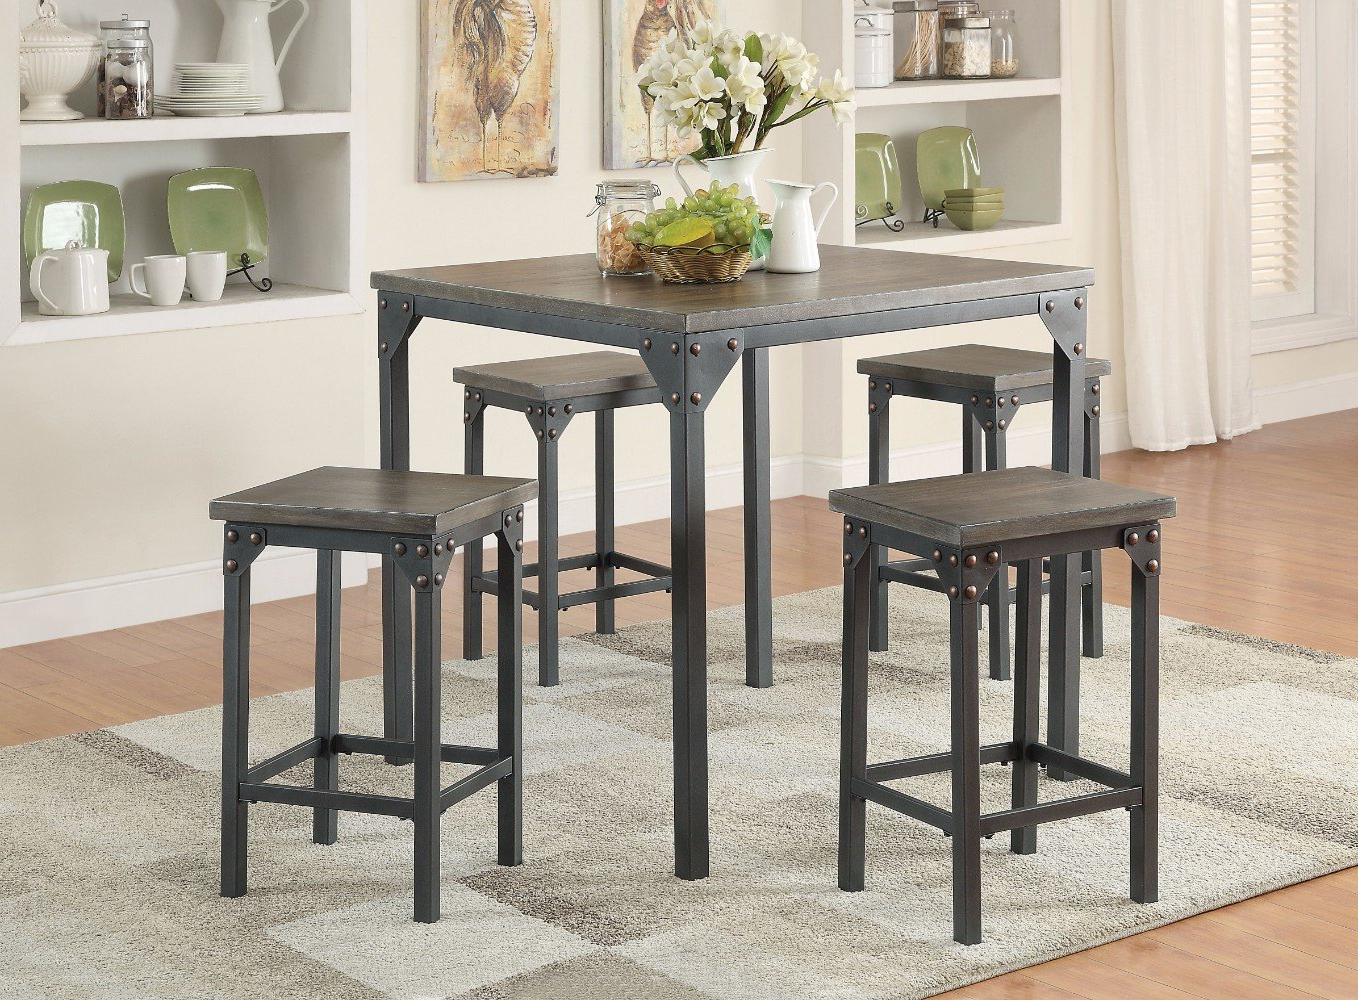 Widely Used Weatherholt Dining Tables With Regard To Gracie Oaks Browne 5 Piece Counter Height Dining Set (View 18 of 25)